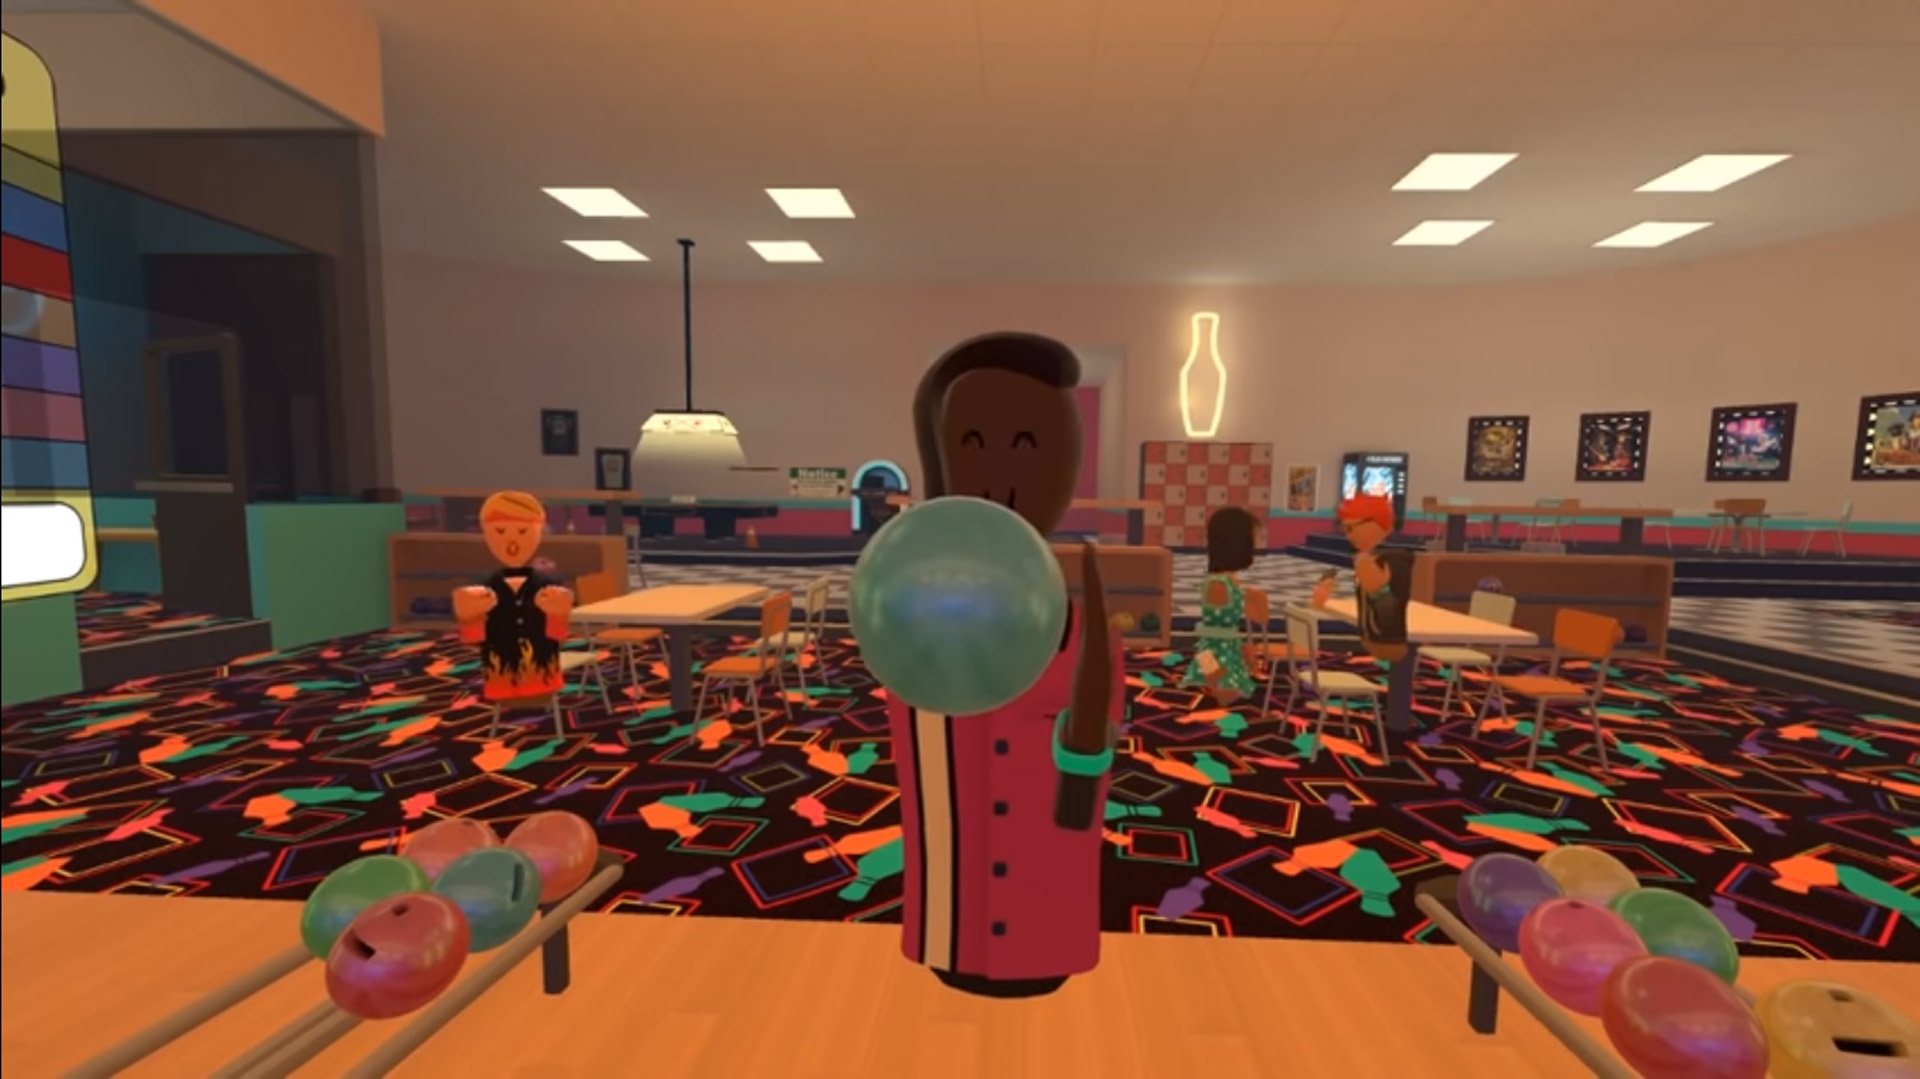 Rec Room Update Brings Multiplayer Bowling To Social Vr